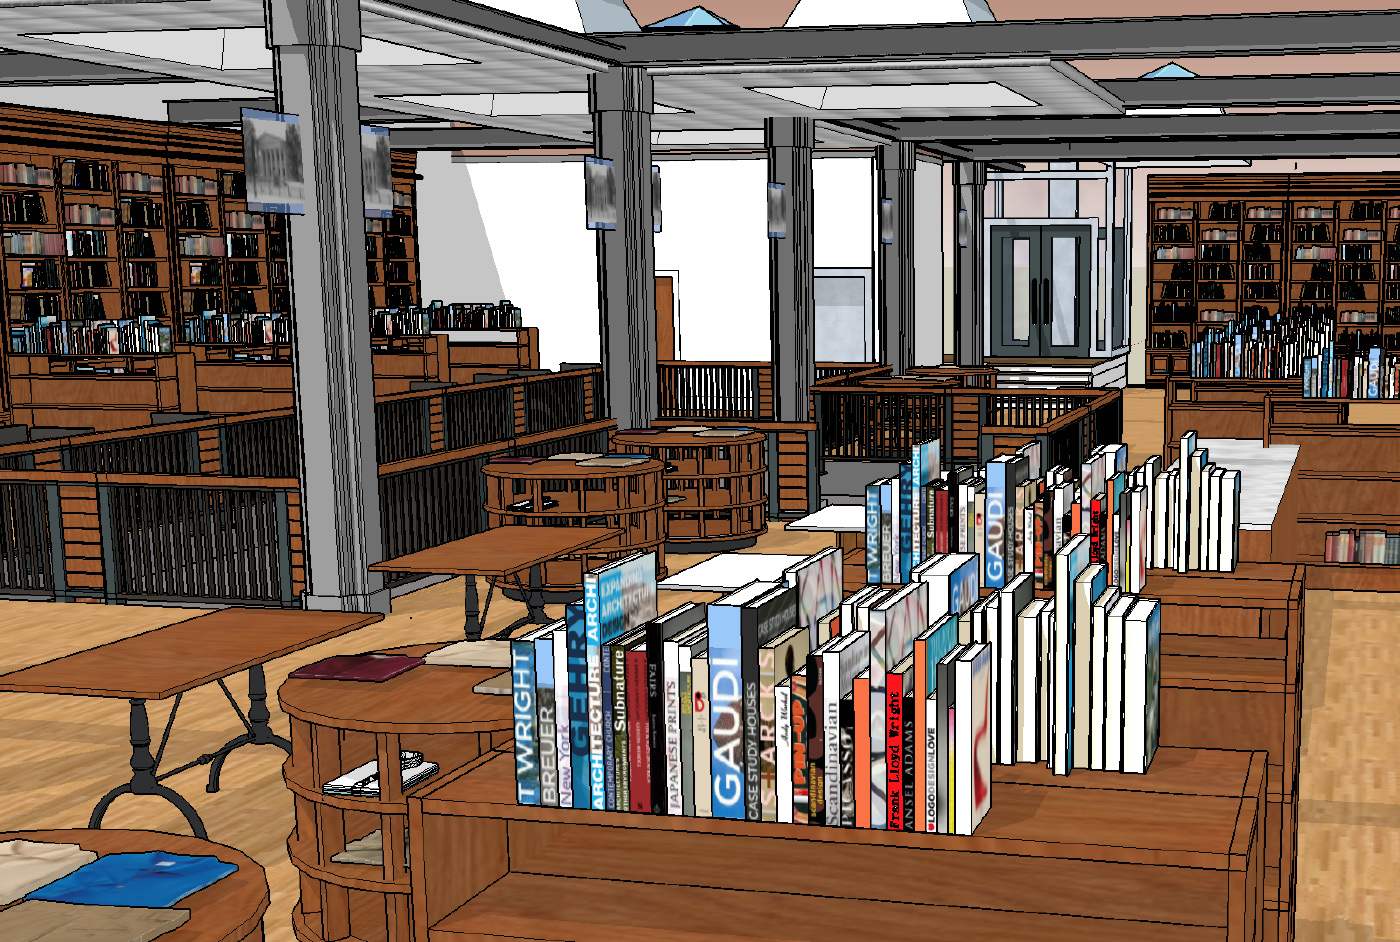 The new Wesleyan R.J. Julia Bookstore, located at 413 Main Street, is under construction and is due to open in May.